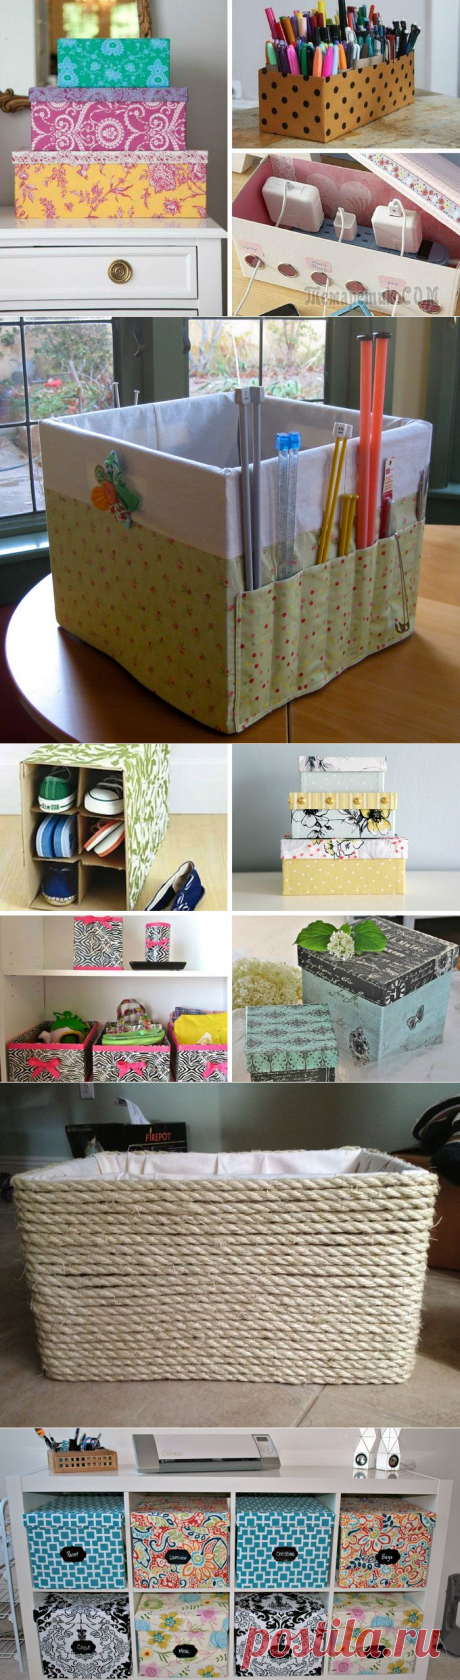 25 ideas after which it will not want to throw out cardboard boxes